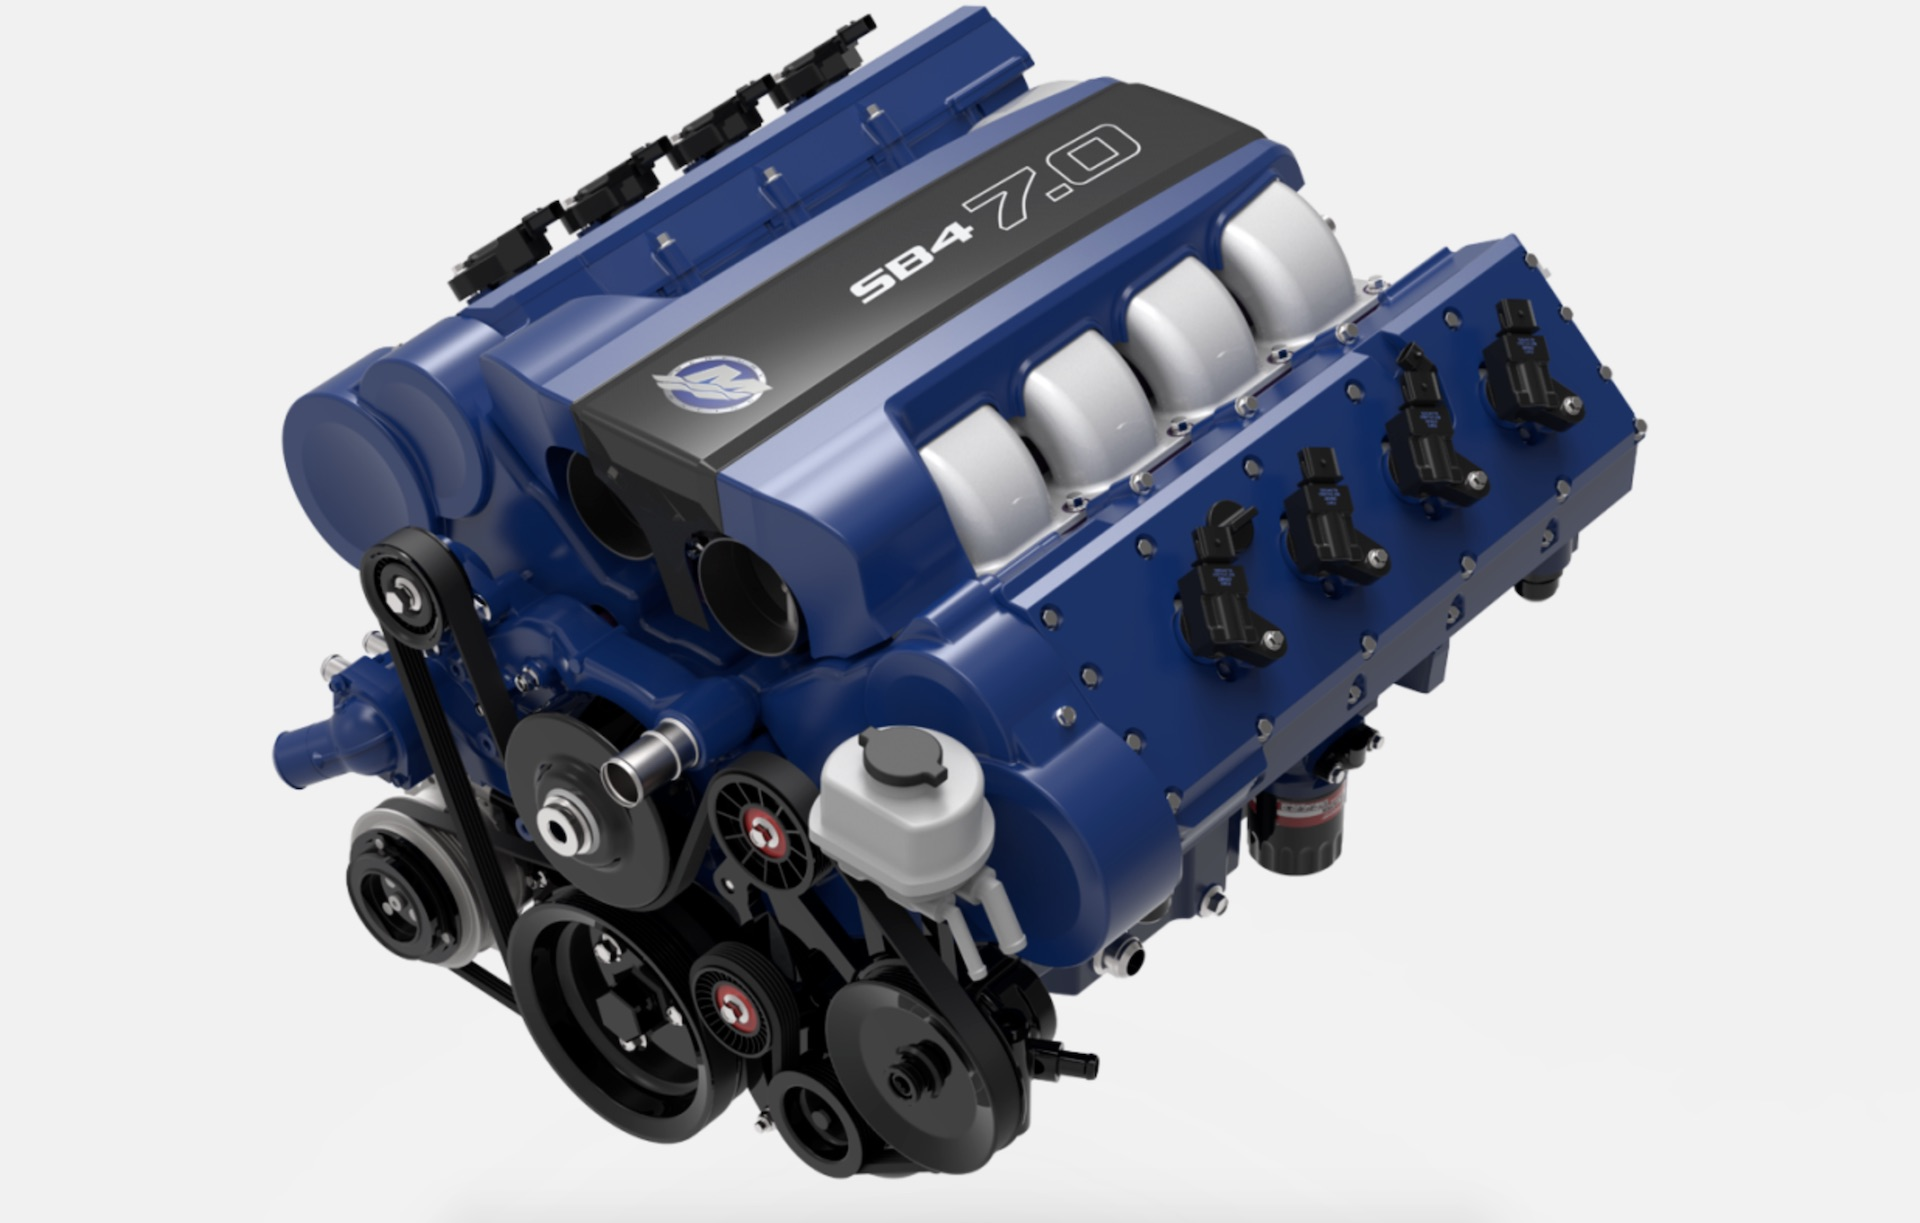 Crate Motors Ls7 Related Crate Engine Delivers 750 Naturally Aspirated Horsepower